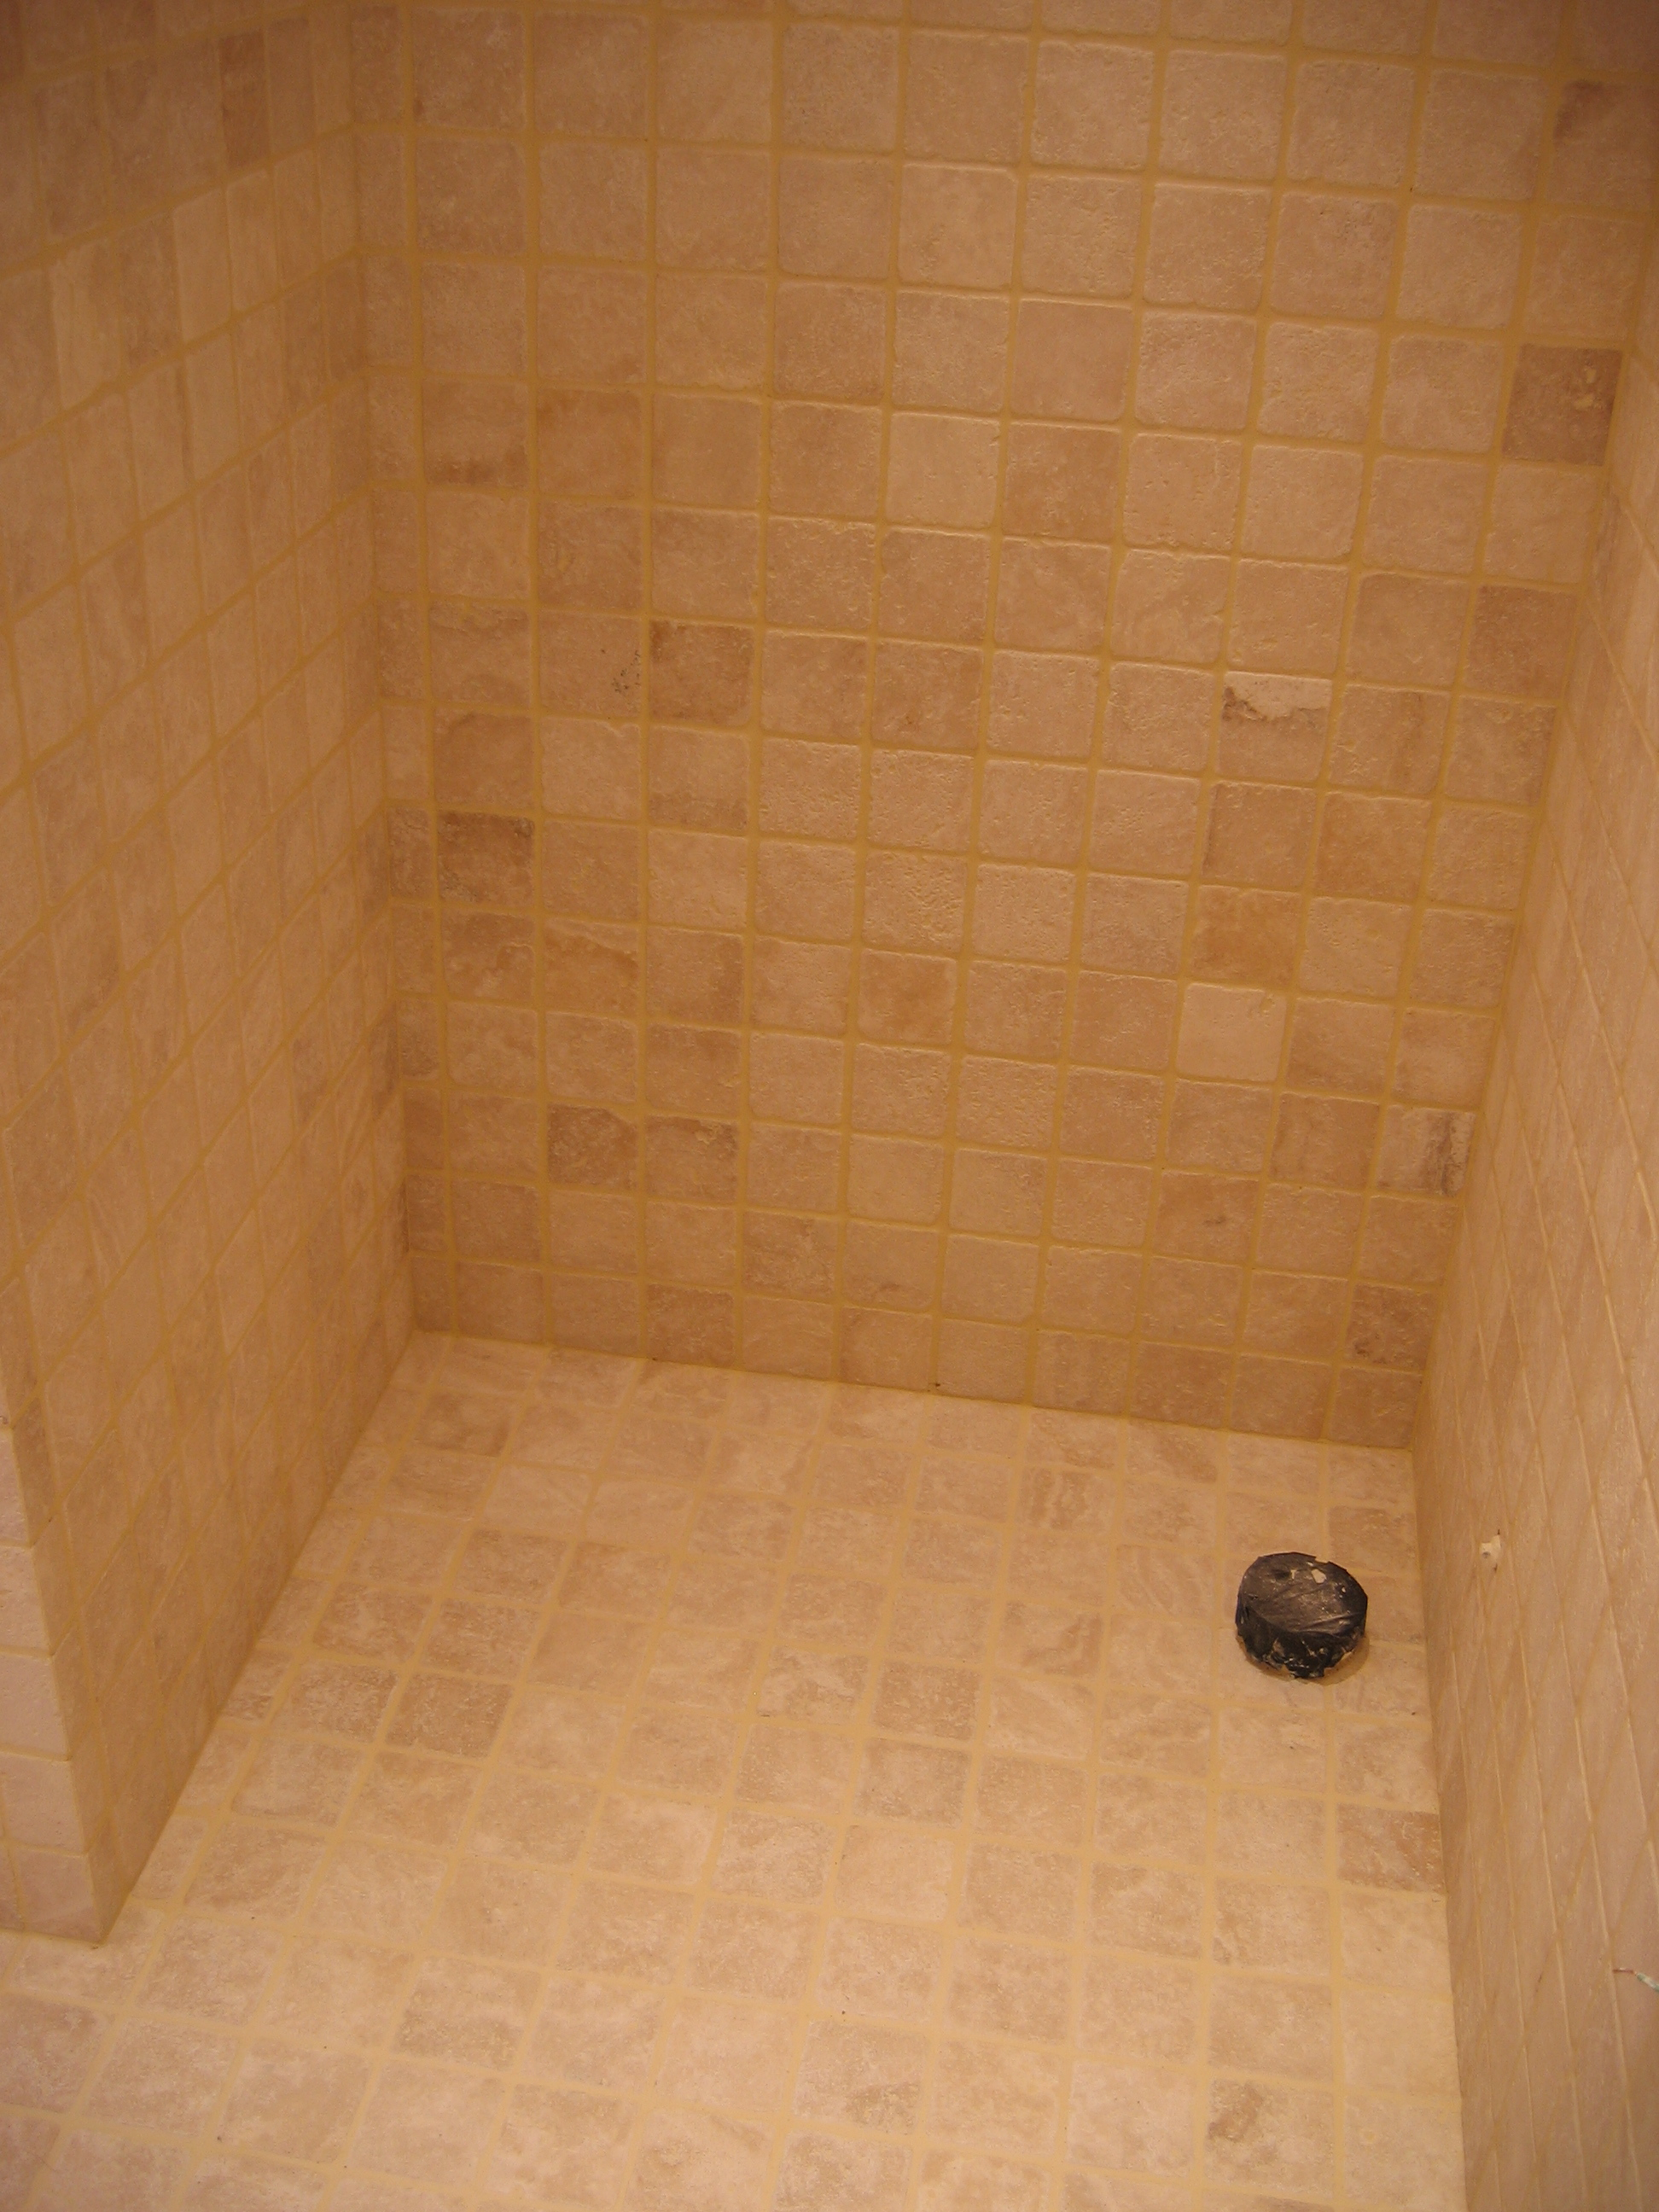 Carrelage pierre naturelle salle de bain interesting for Salle bain pierre